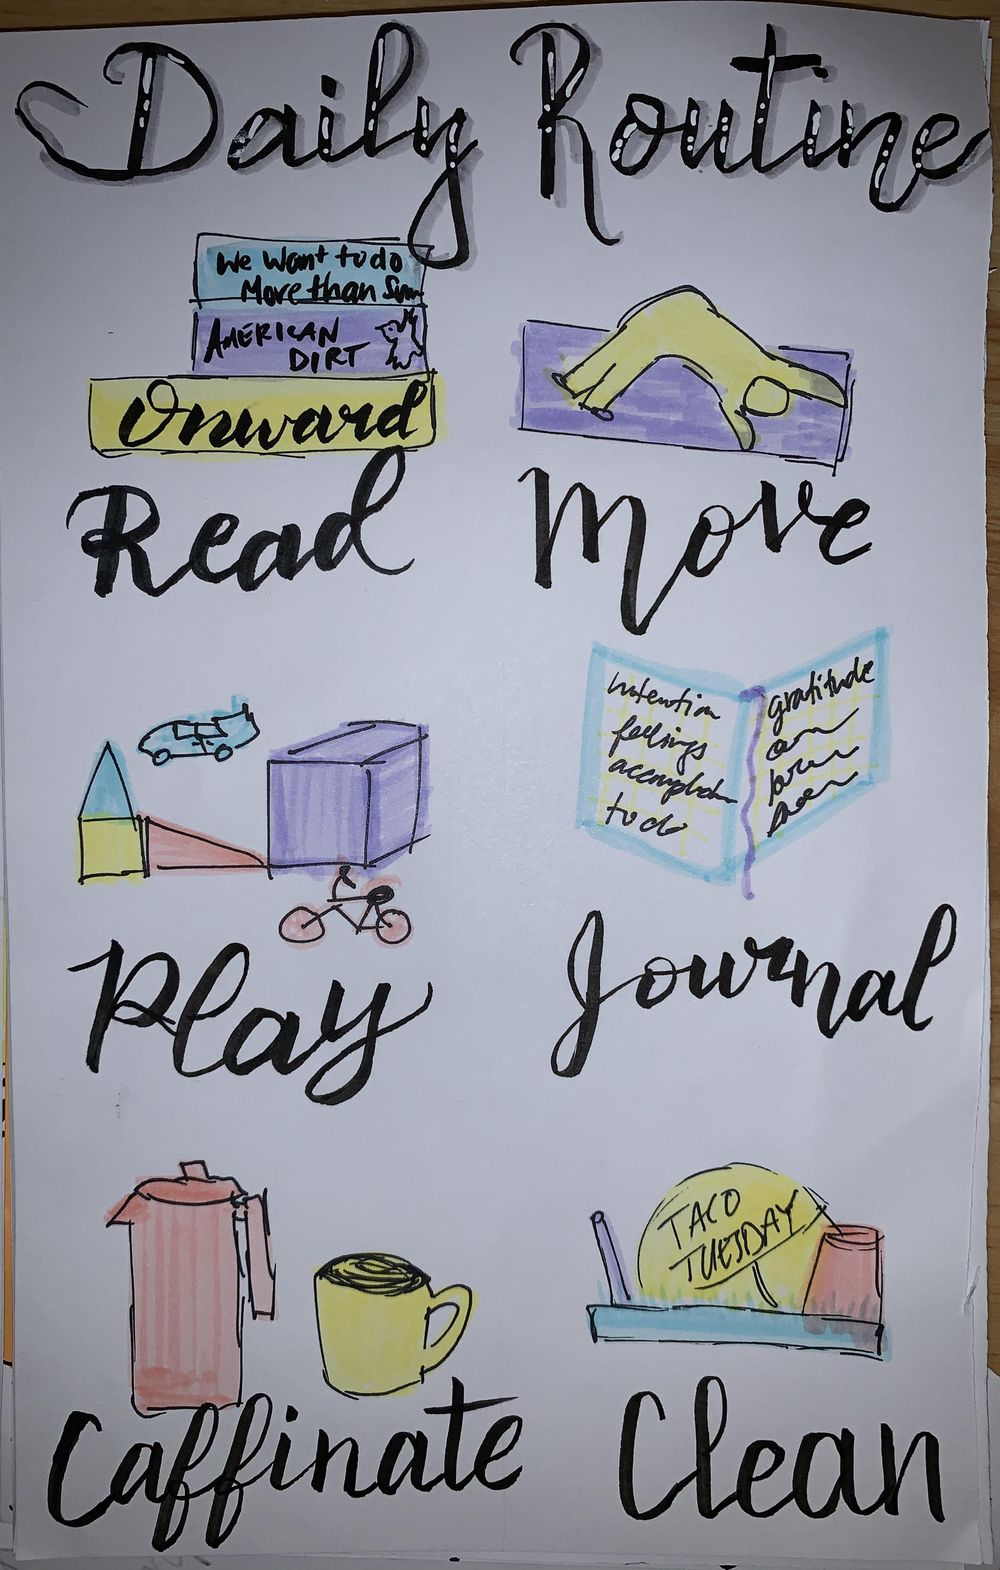 Illustrated Journaling journey - image 9 - student project